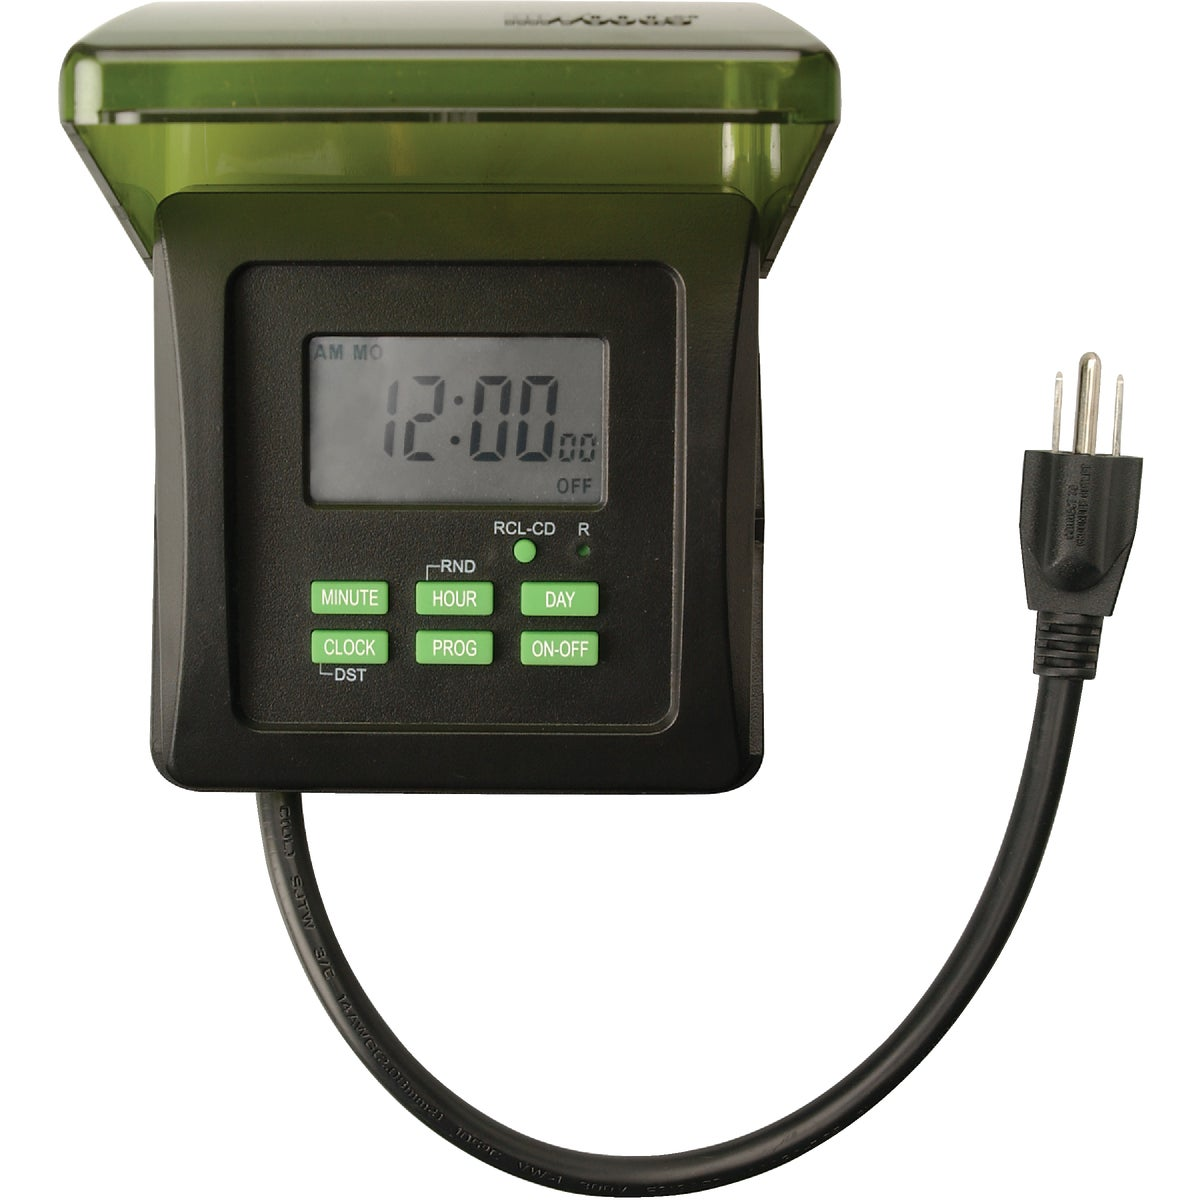 7-DAY OUTDOOR TIMER